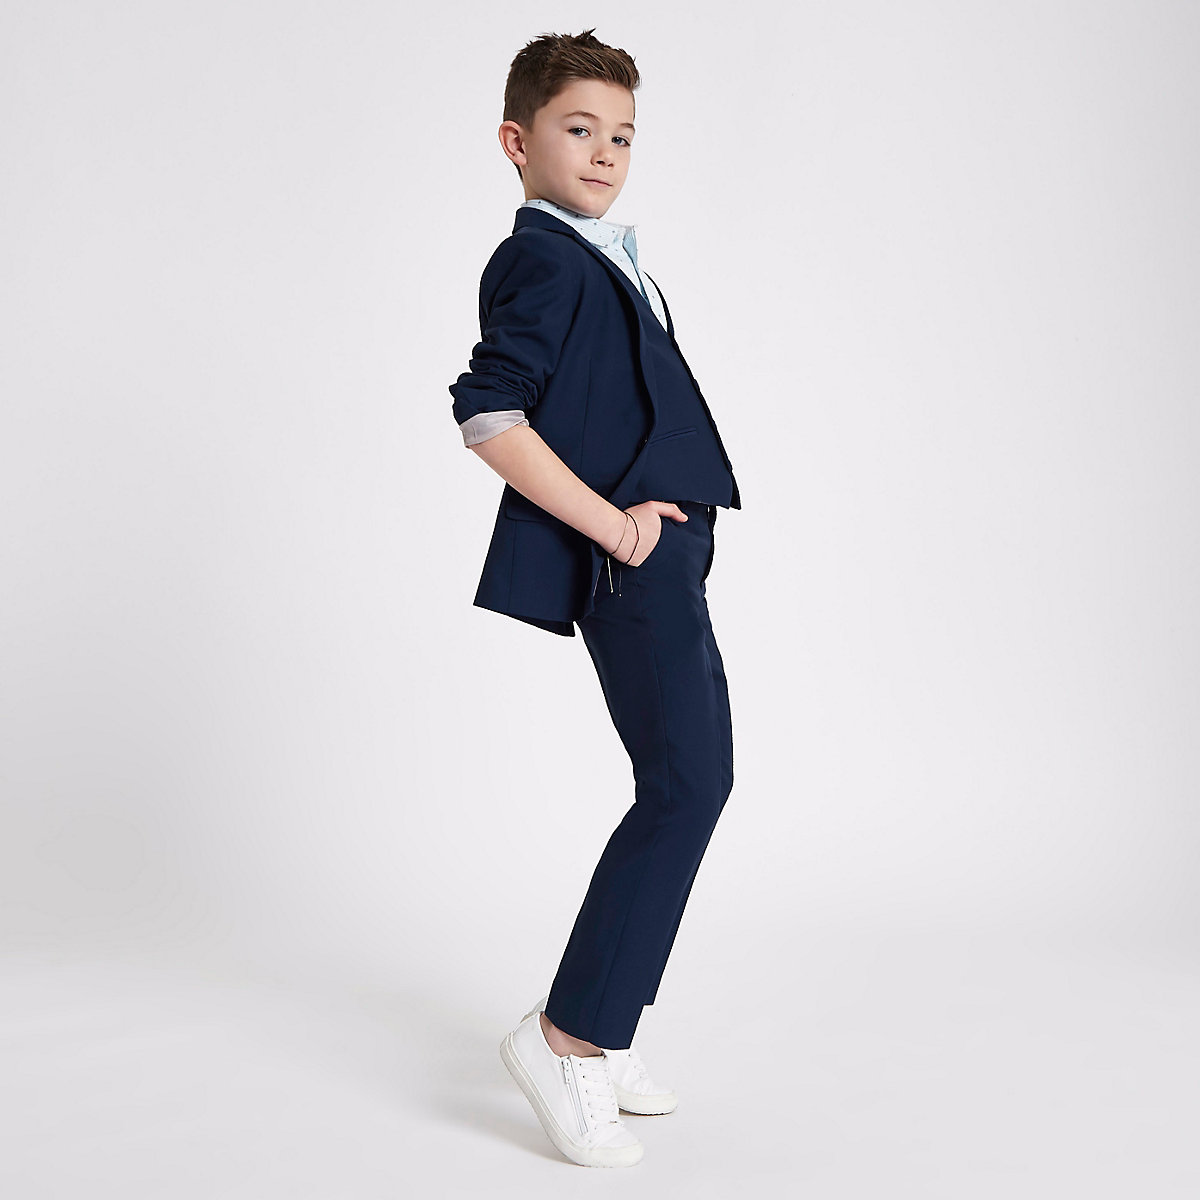 Boys navy suit pants